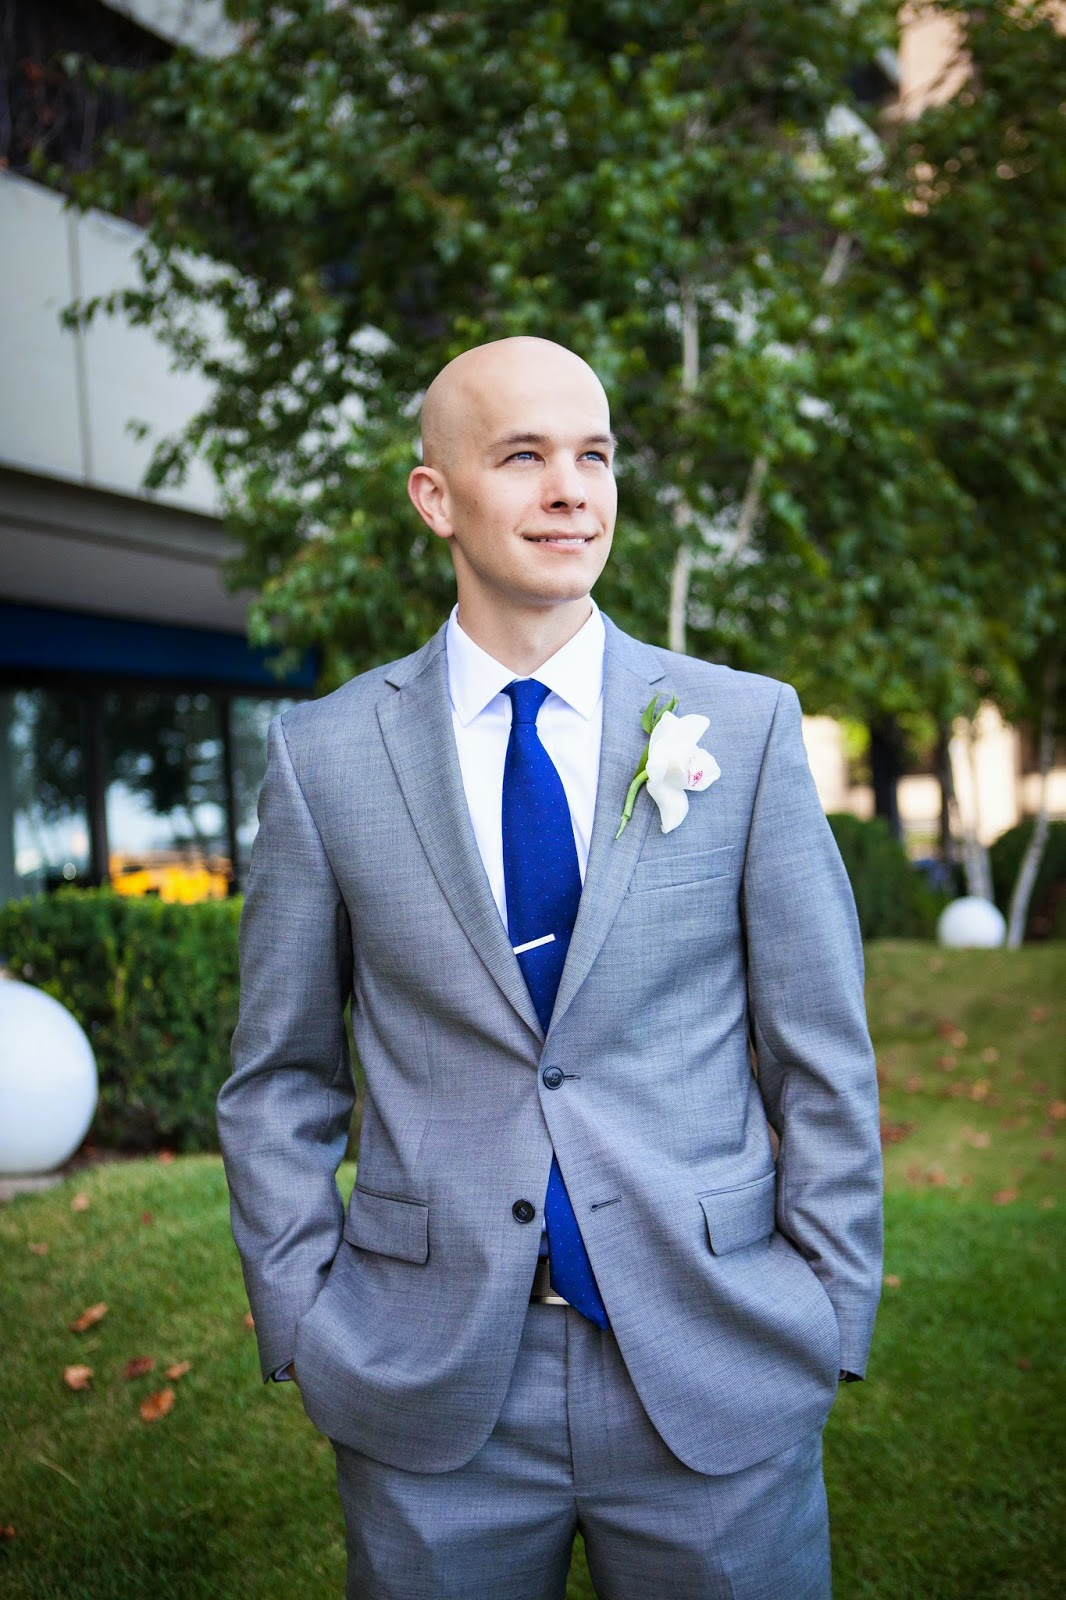 groom in gray suit and blue tie